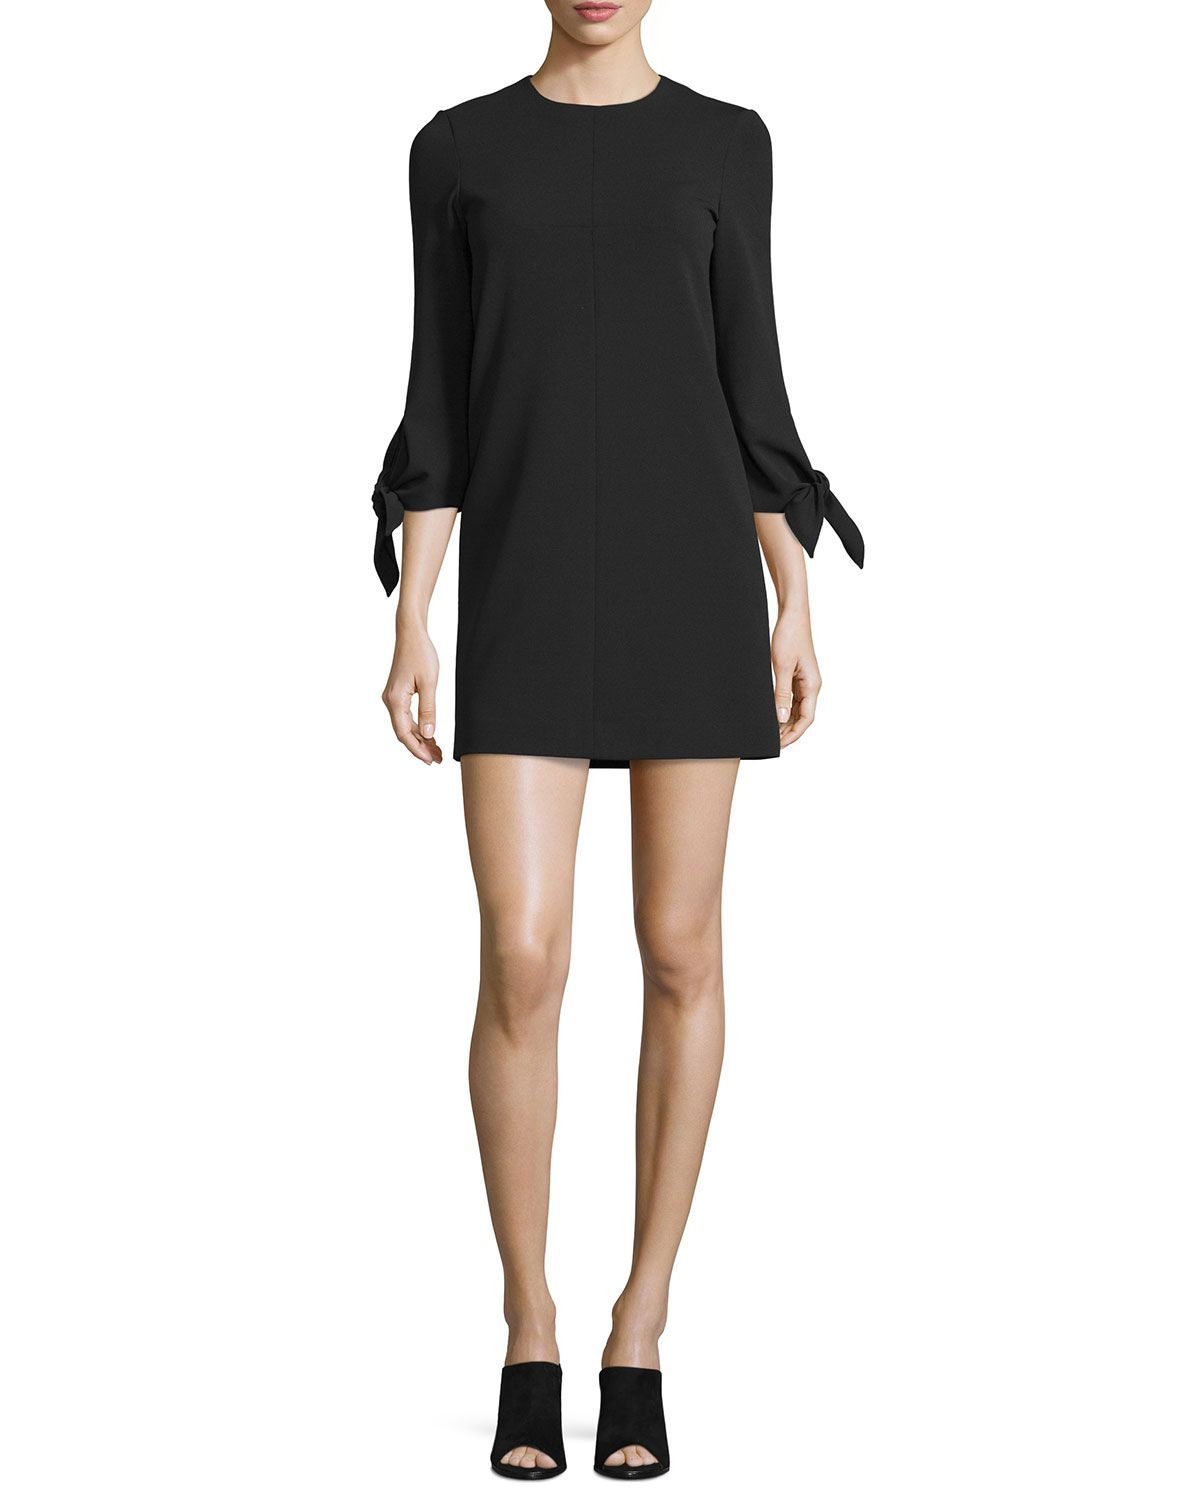 2109789acb Tie-Sleeve Structured Crepe Shift Dress, Black | Be Chic